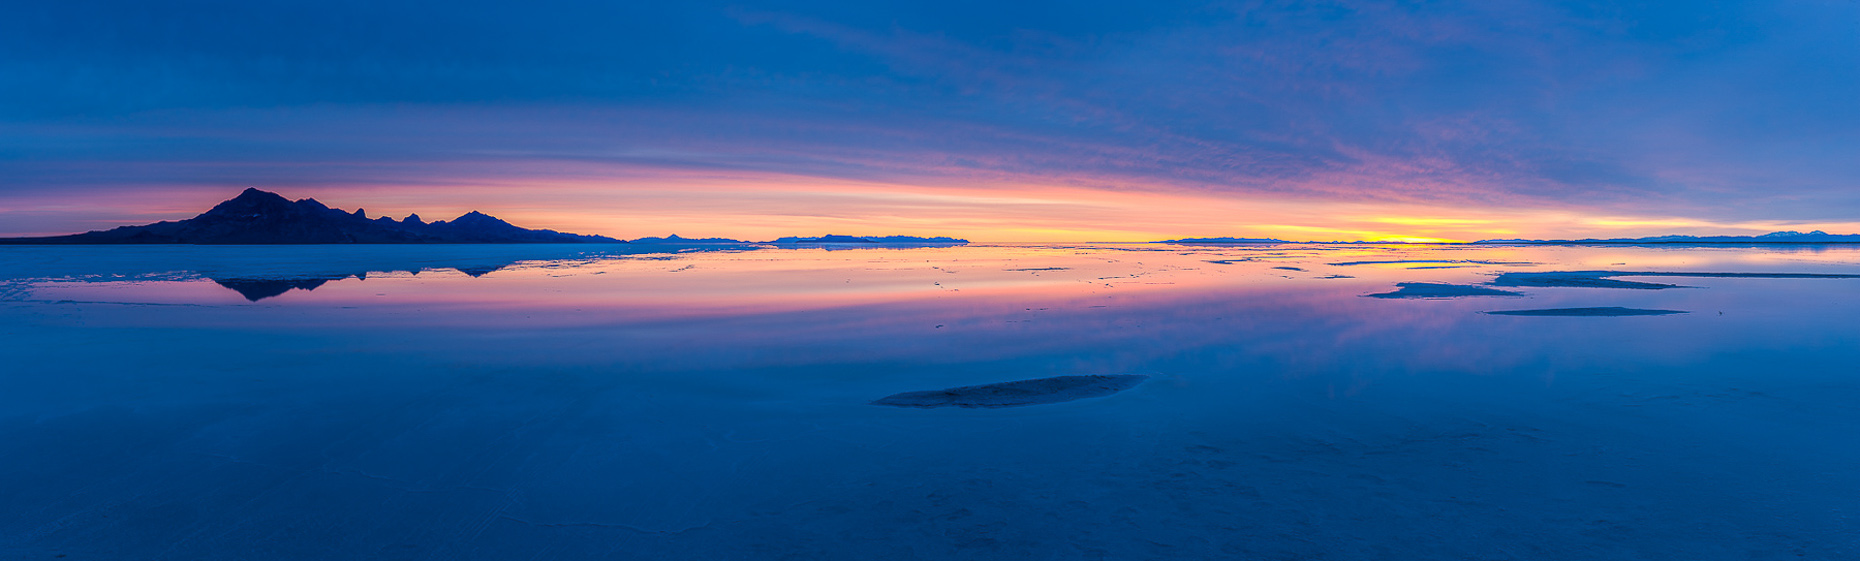 Panoramic image of dawn on Salt Lake, blue light and golden sun.  Bonneville Salt Flats, Utah.